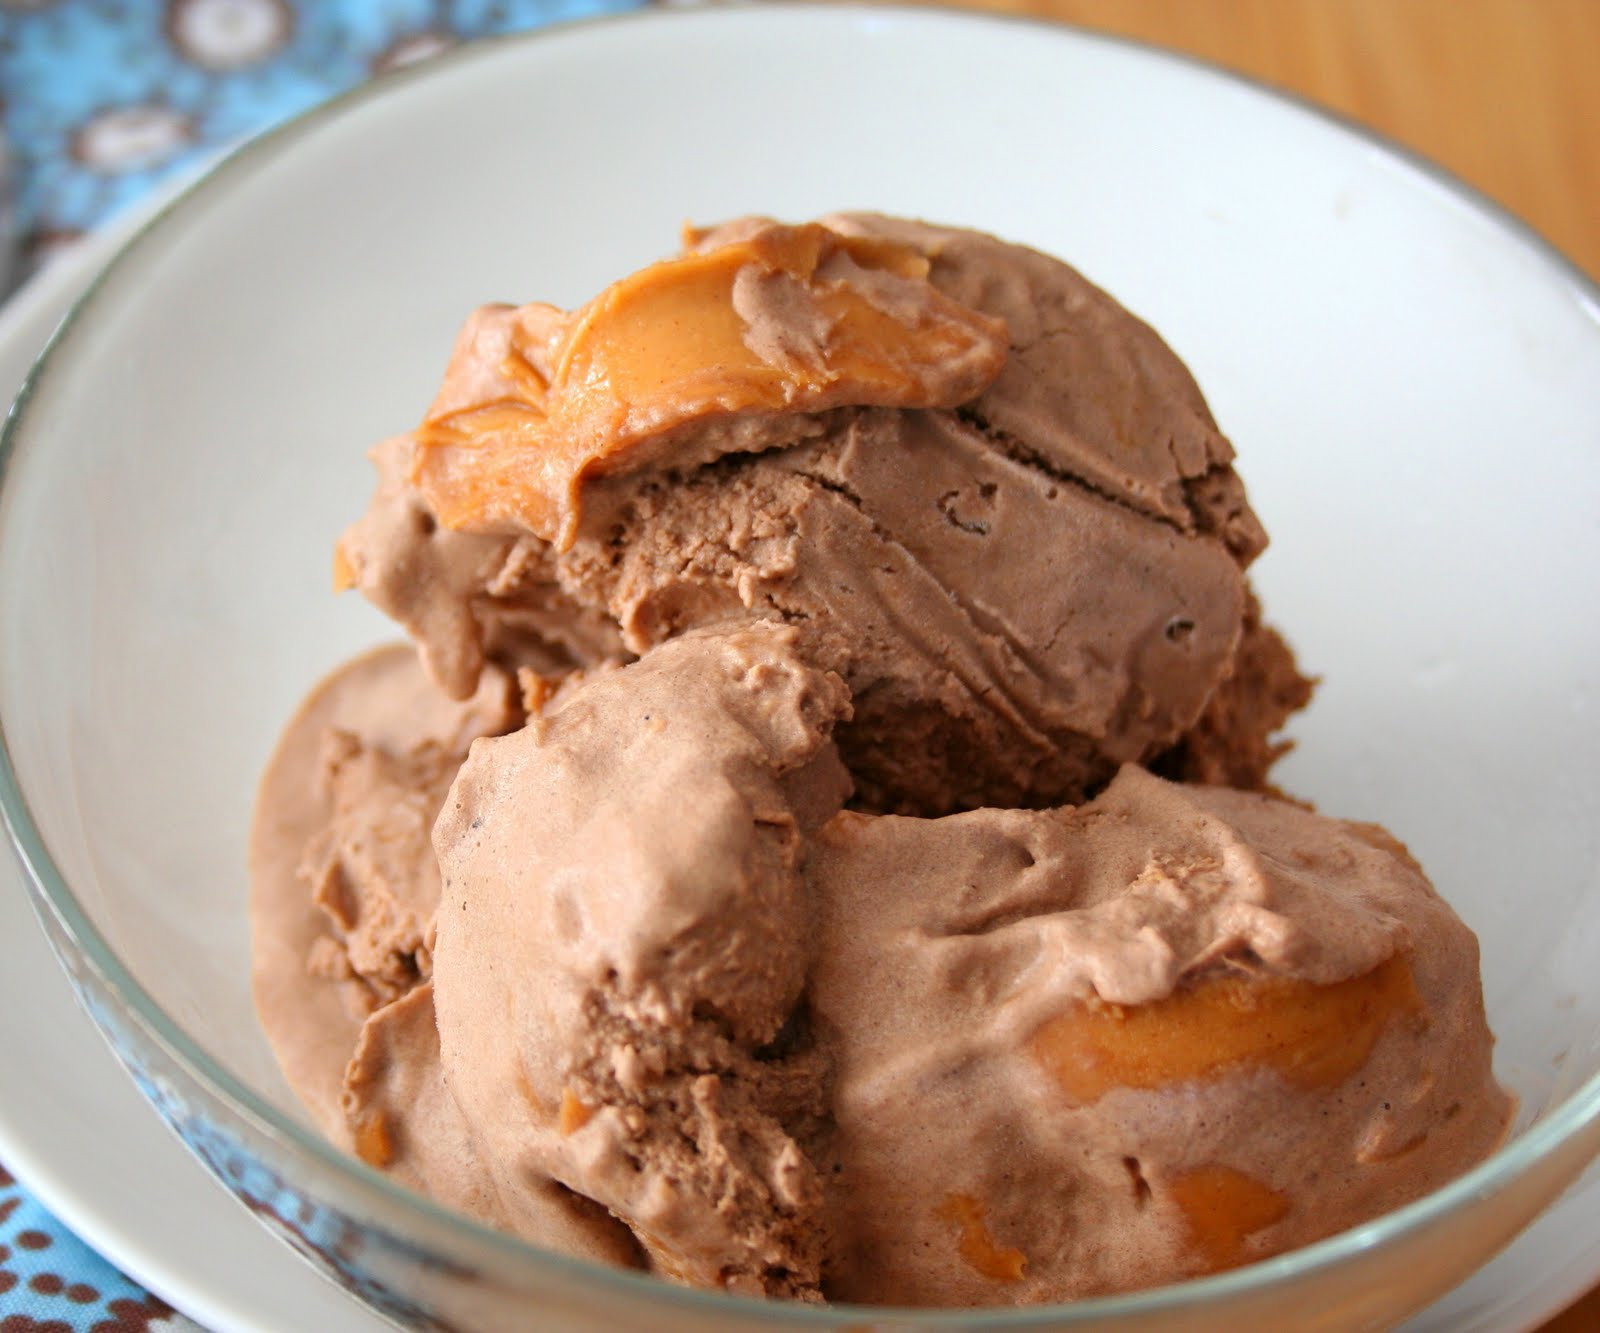 Chocolate Peanut Butter Ice Cream Low Carb And Gluten Free All Day I Dream About Food